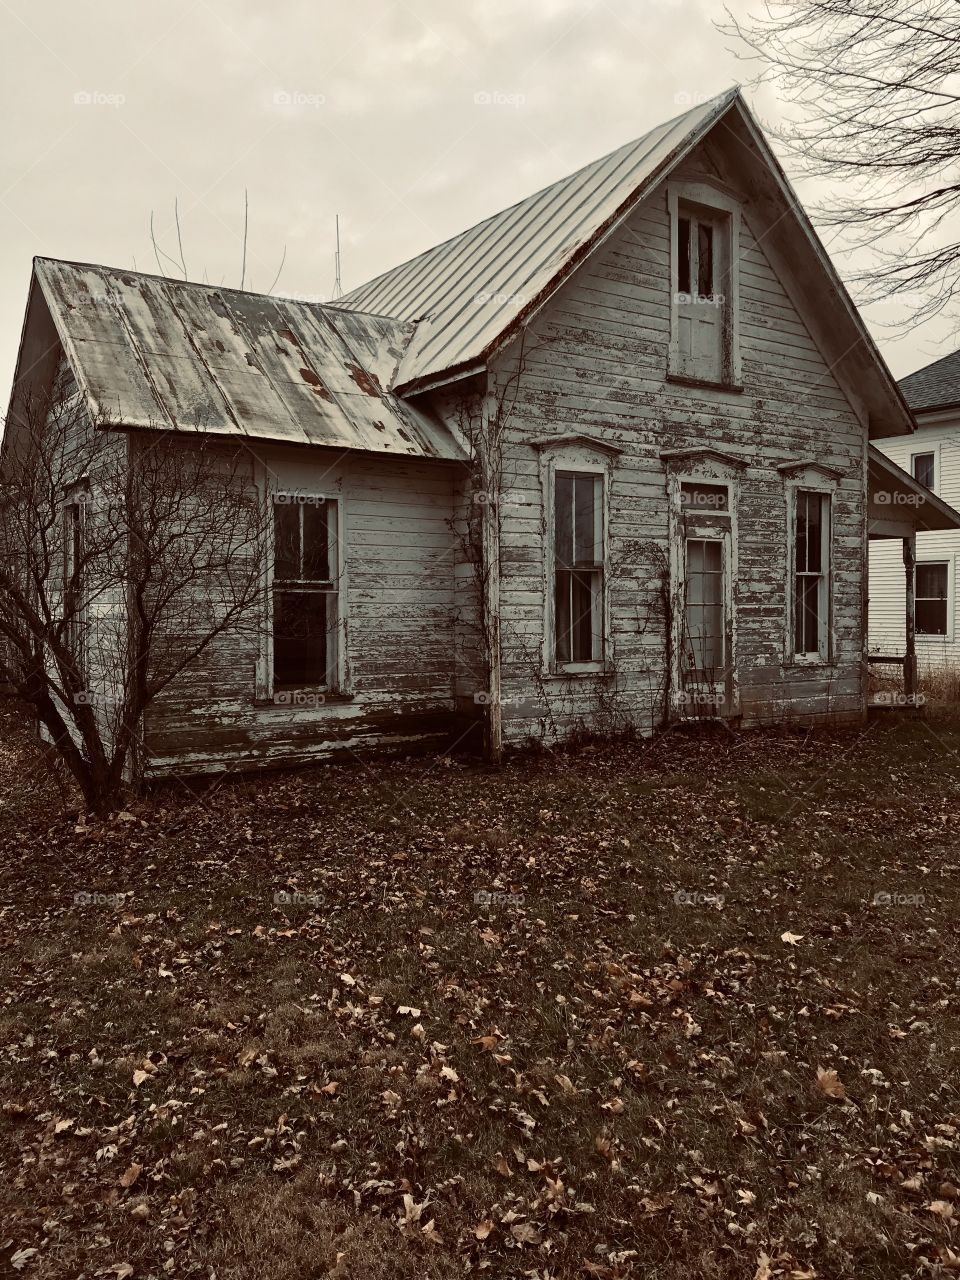 Abandoned house in the old town of Jenera Ohio